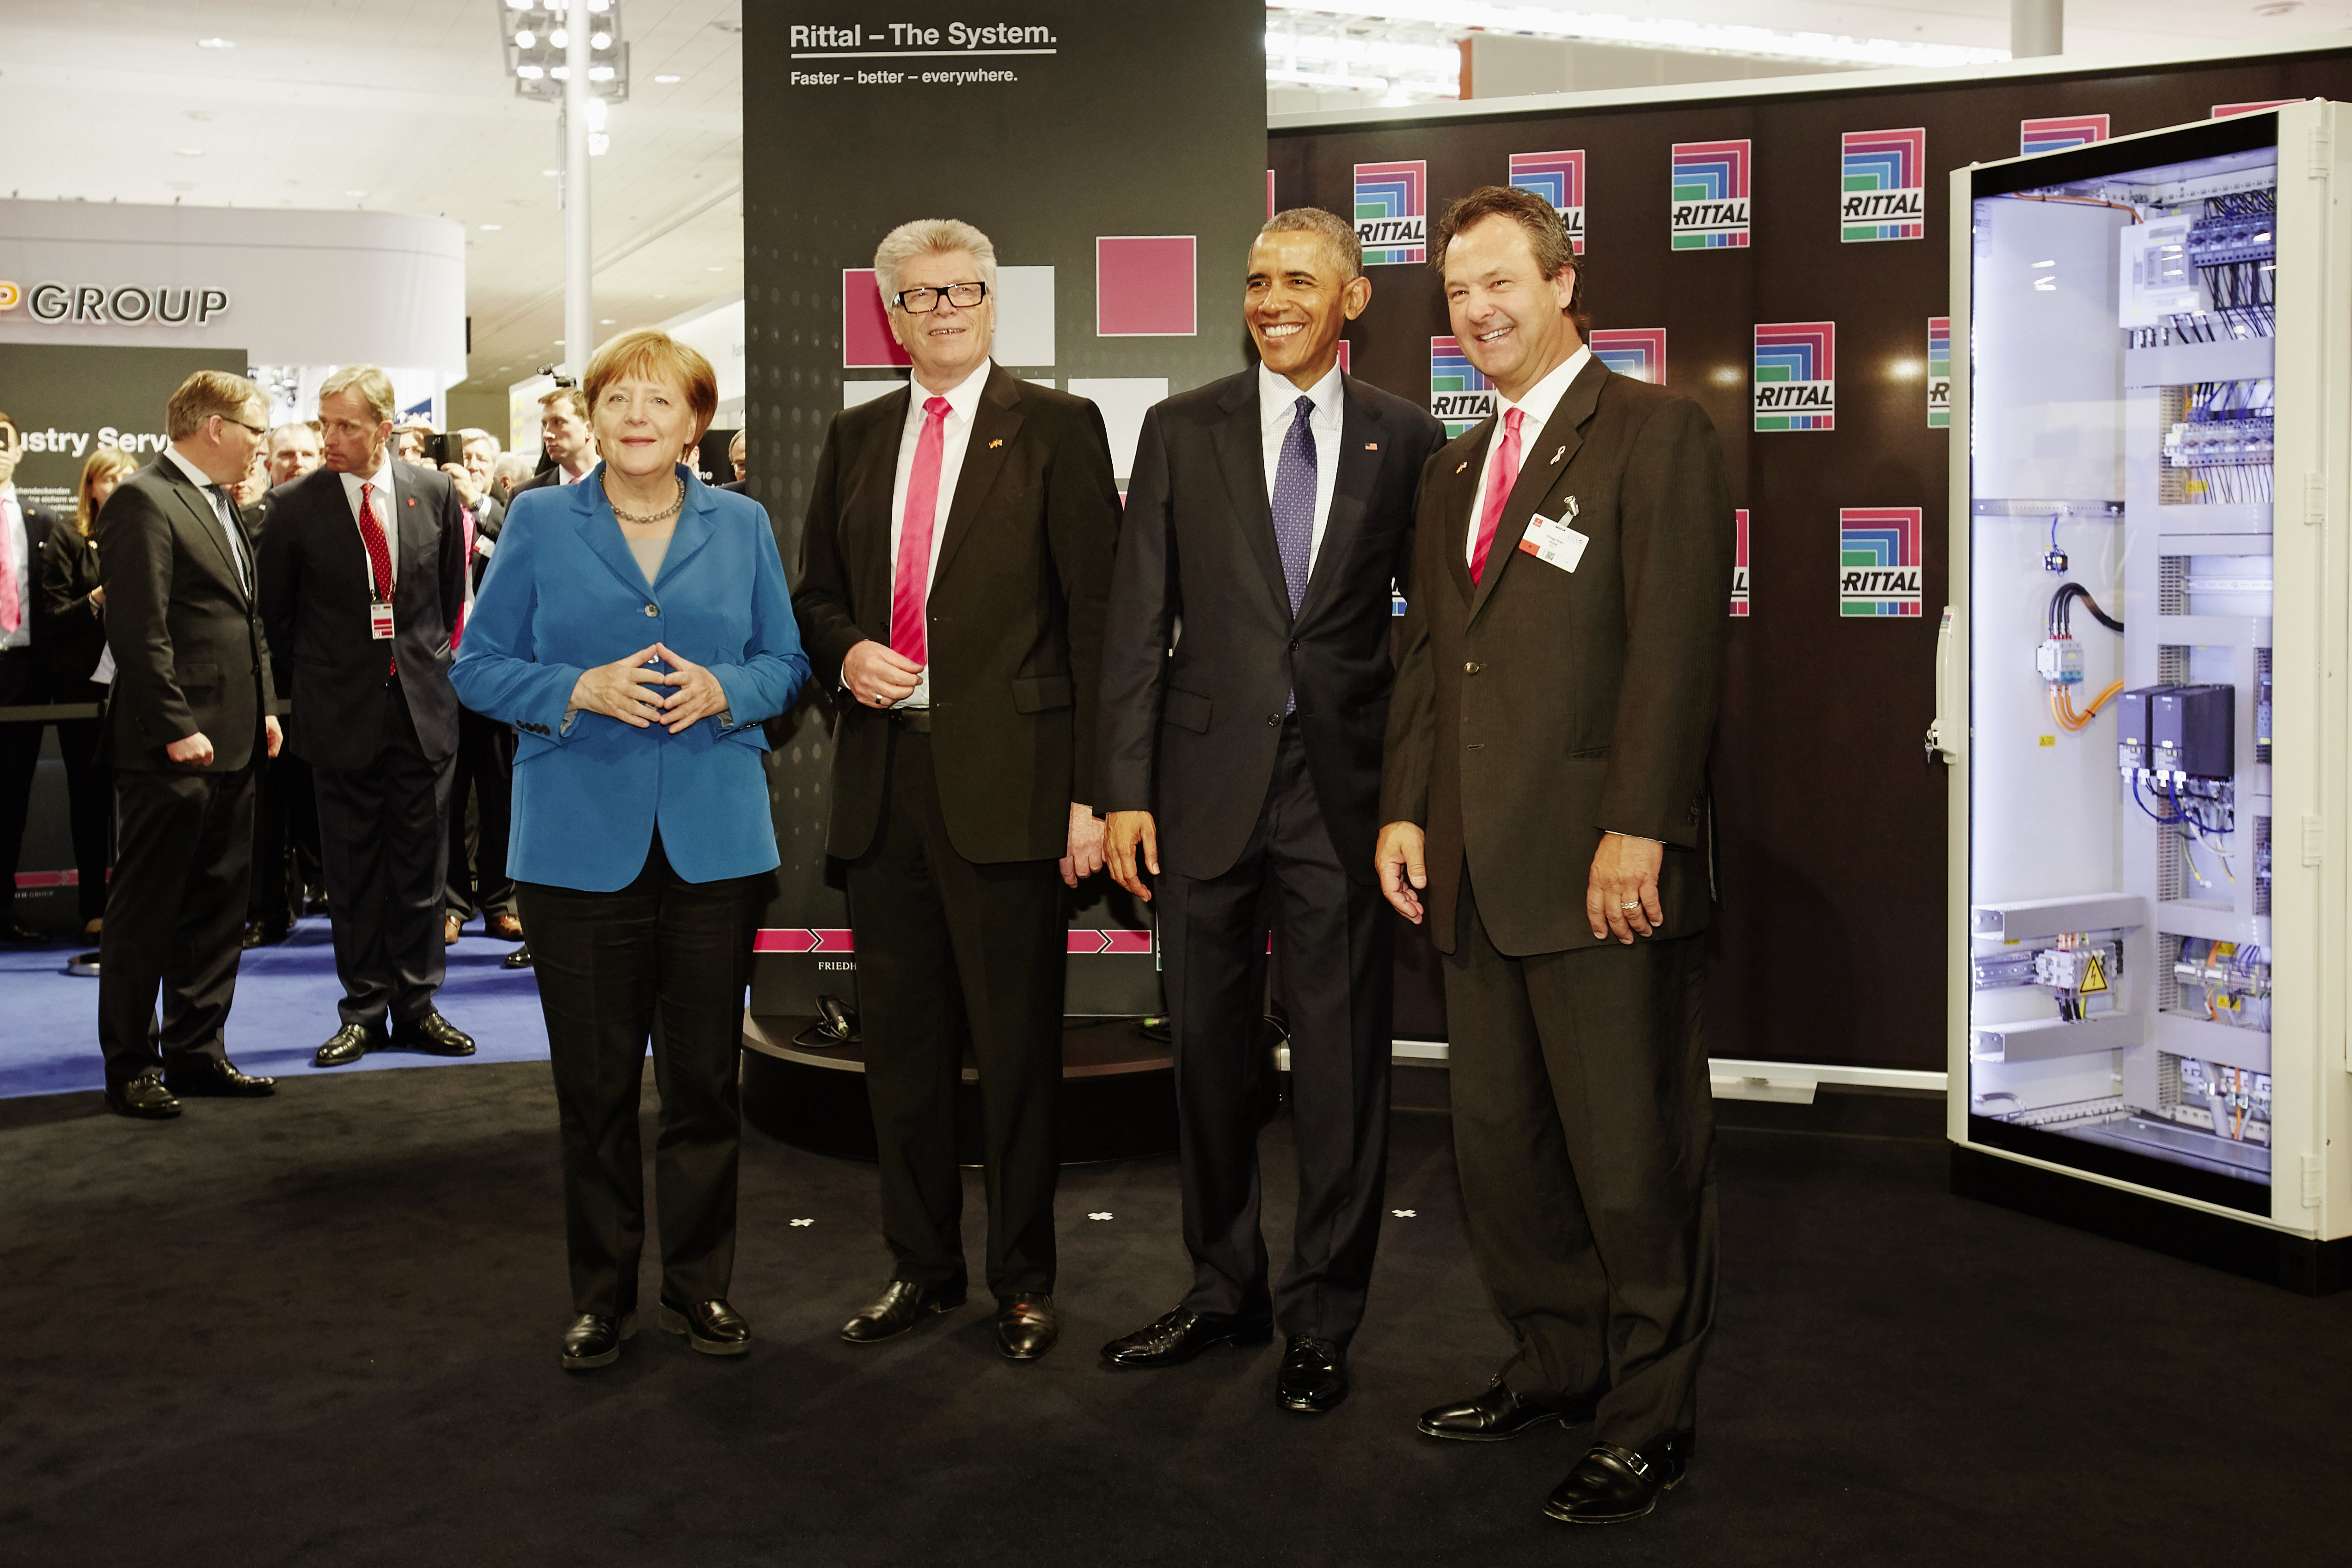 In Photo: German Chancellor Angela Merkel Rittal Chief Executive Officer and Owner Dr. Friedhelm Loh Barack Obama, President of the United States of America Gregg Holst, President of Rittal North America